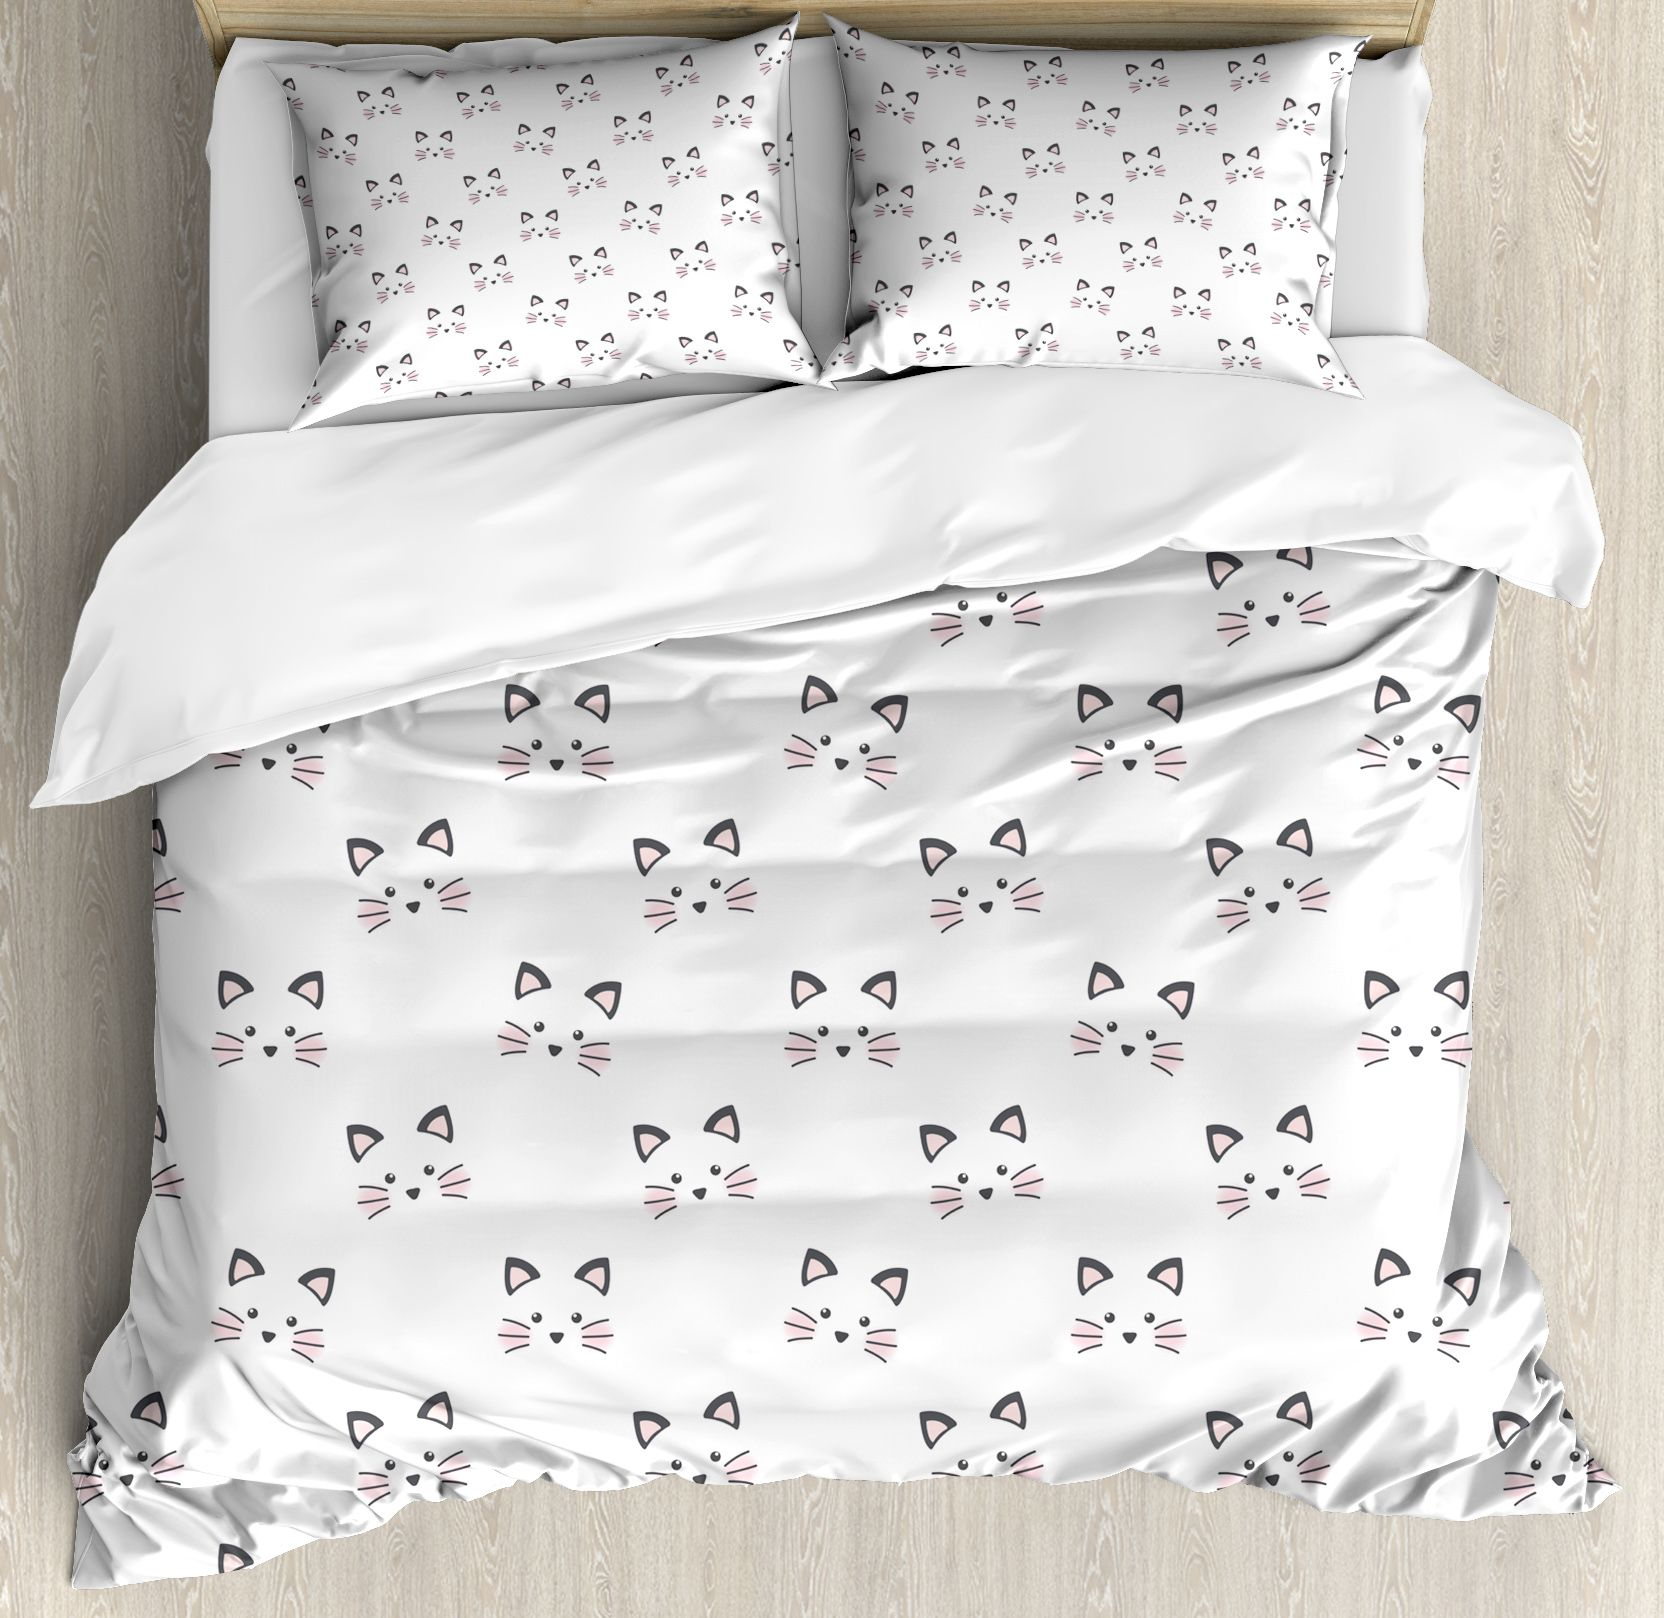 Kitten Duvet Cover Set Sketching Of A Blushing Cat Face Features Cartoon Style Hand Drawn Cat Whiskers Decorative Be Bed Decor Cute Bed Sets Duvet Cover Sets